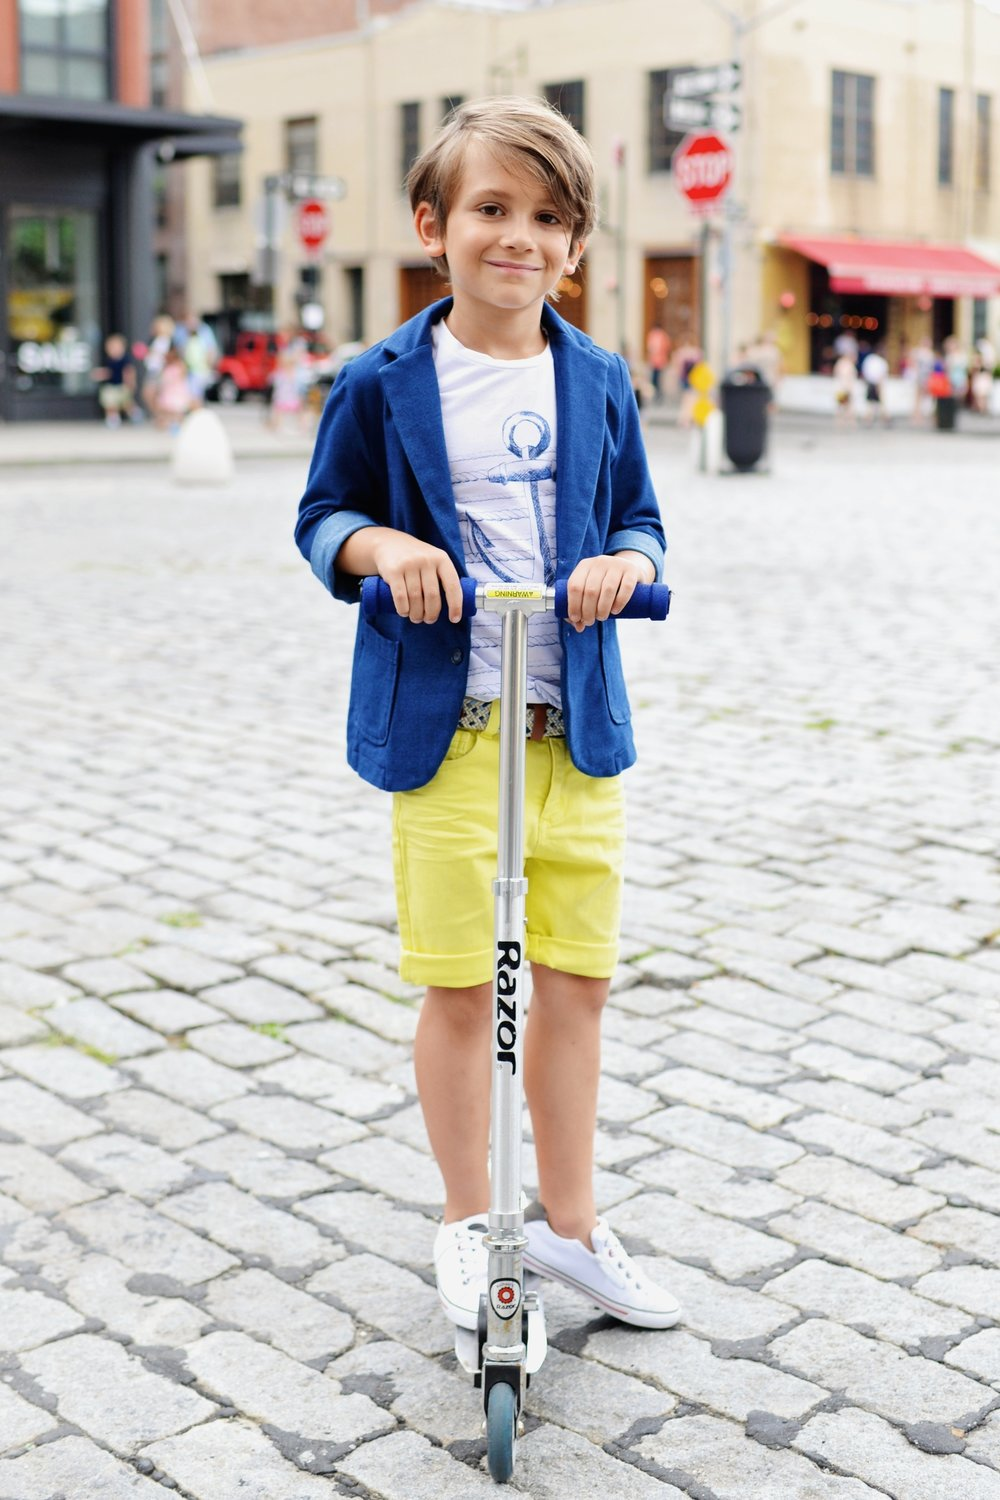 Enfant+Street+Style+by+Gina+Kim+Photography-61.jpeg